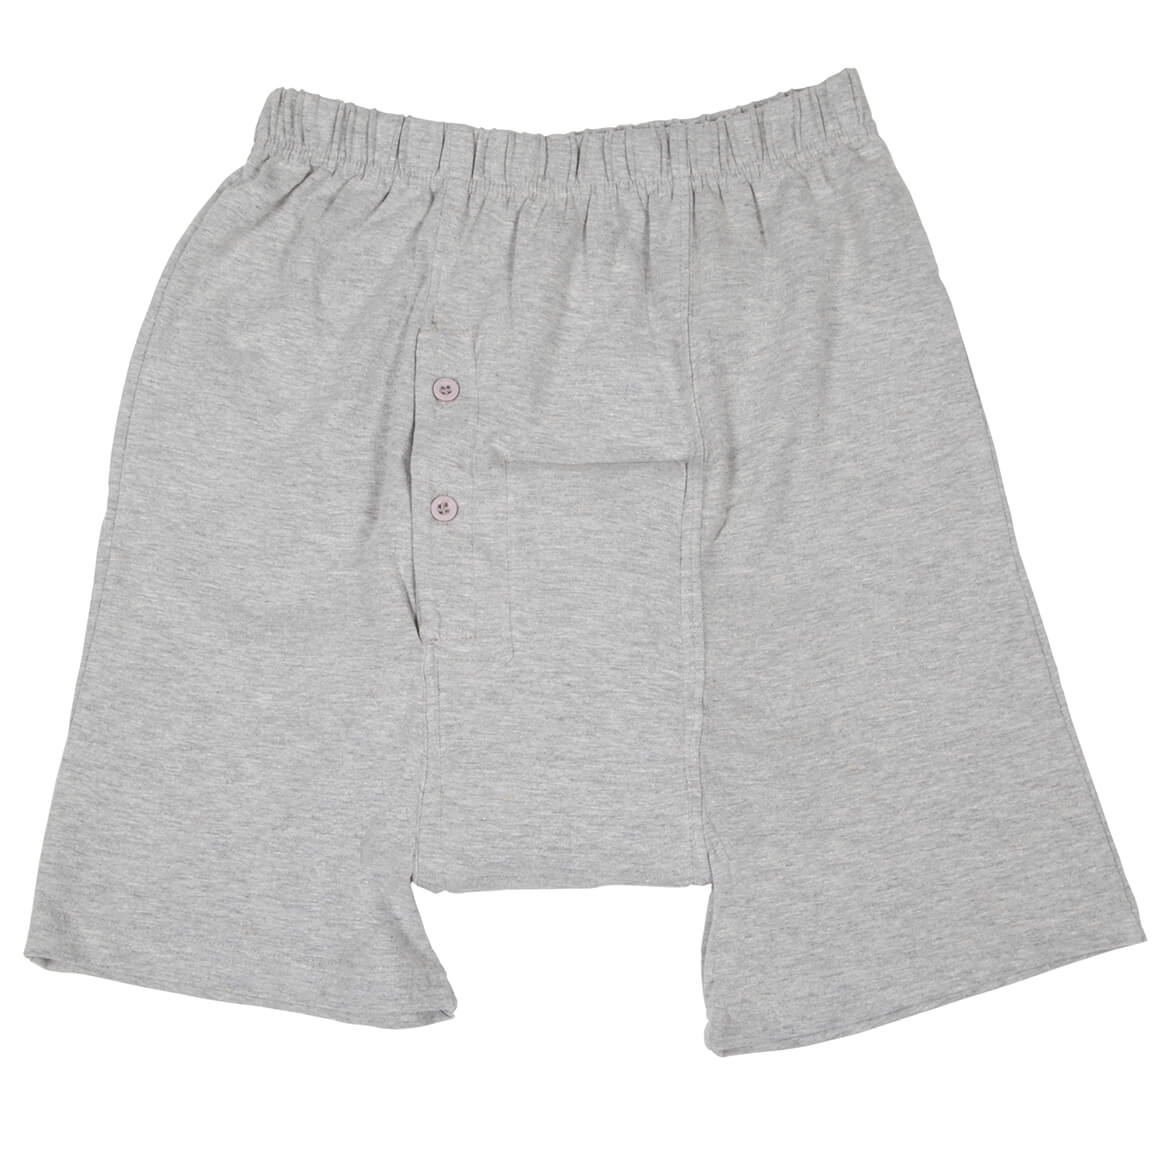 Incontinence Boxer Brief 1 Pair-370078